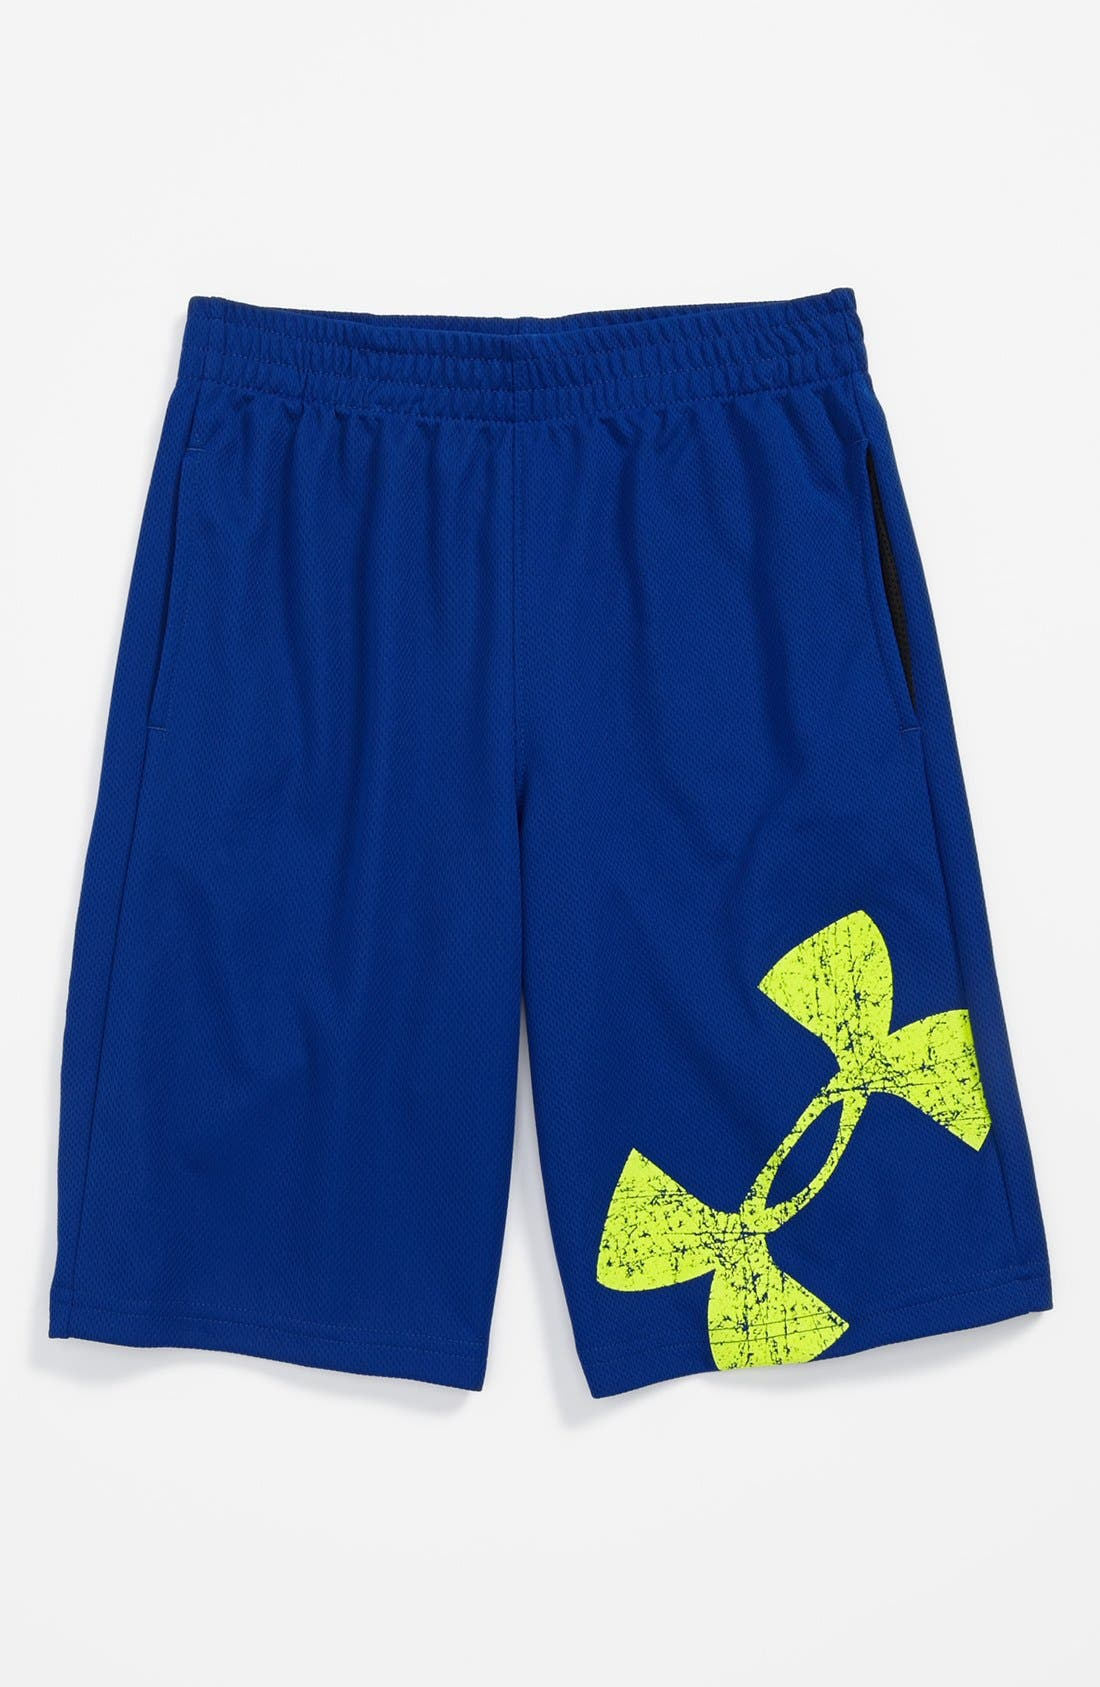 Main Image - Under Armour 'Power Up' HeatGear® Shorts (Little Boys)